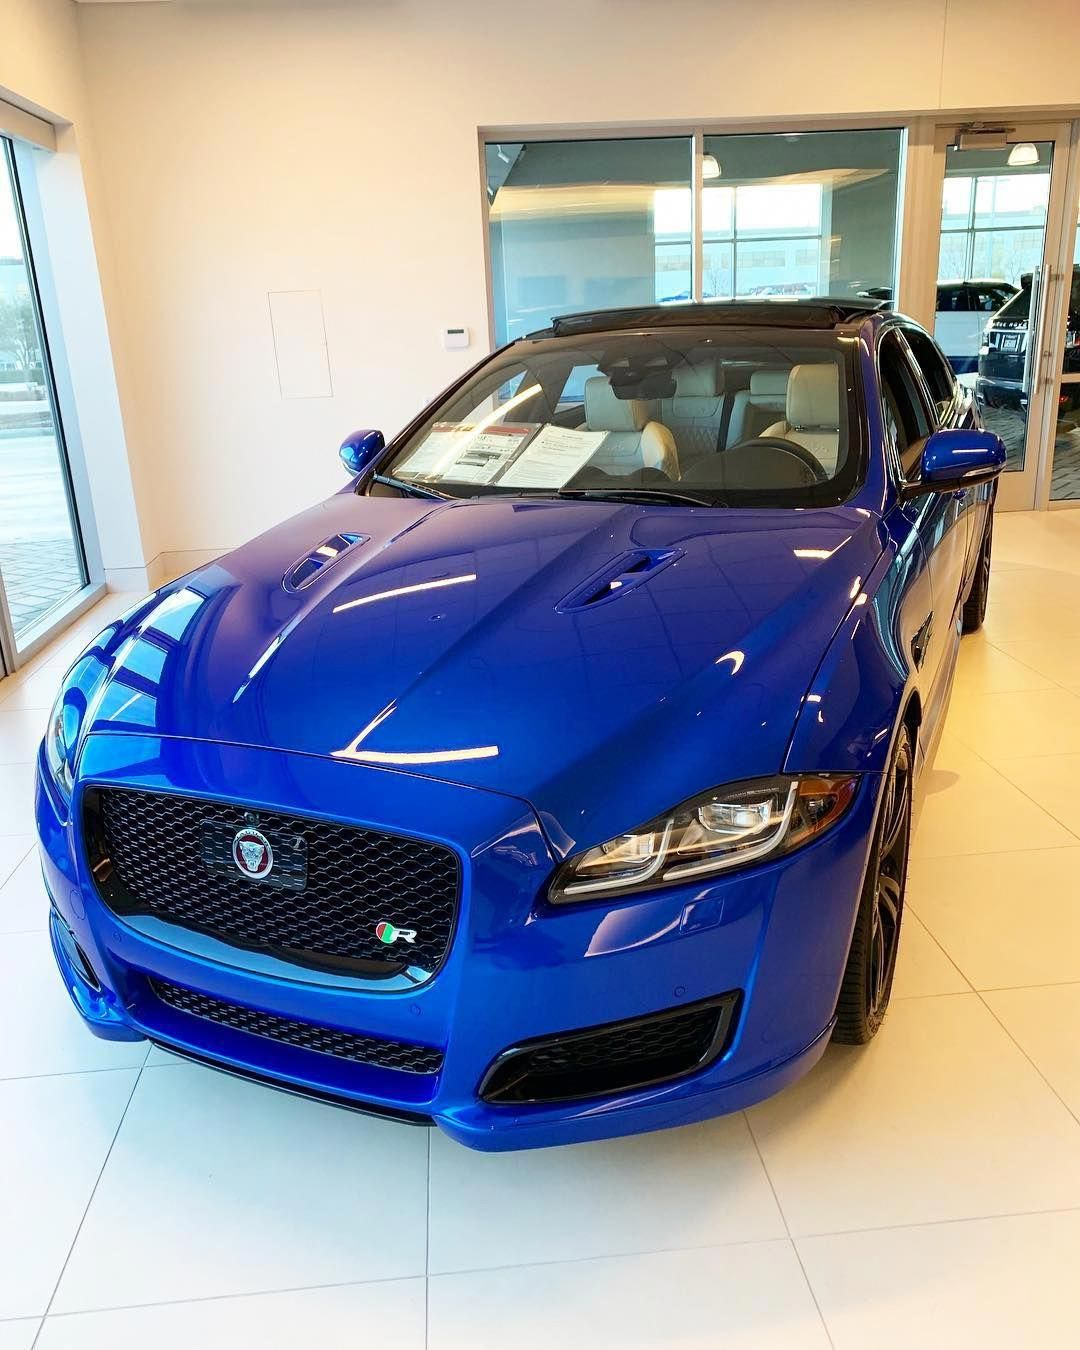 Available At Park Place Jaguar Dfw Introducing This Used 2018 Jaguar Xj With An Exclusive Offer From Park Place Jaguar Dfw Jaguar Xj Jaguar Jaguar Car